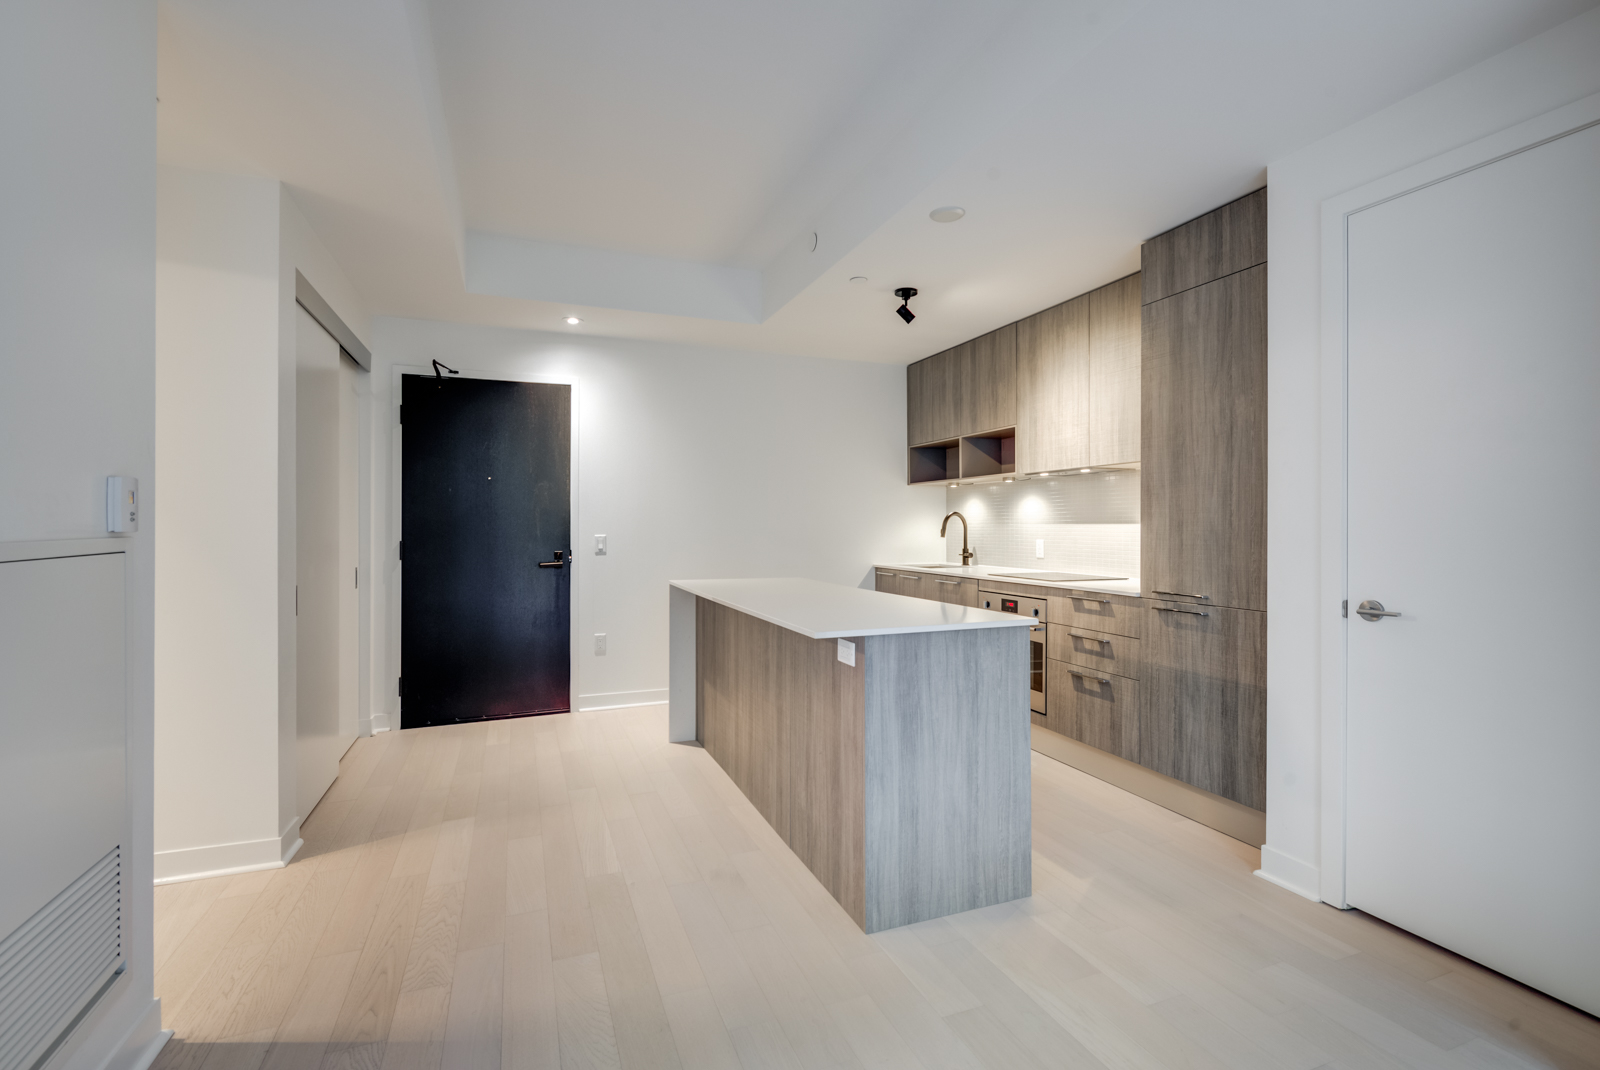 Light-toned laminate floors, kitchen island with wooden base and cabinets with wood finishes.